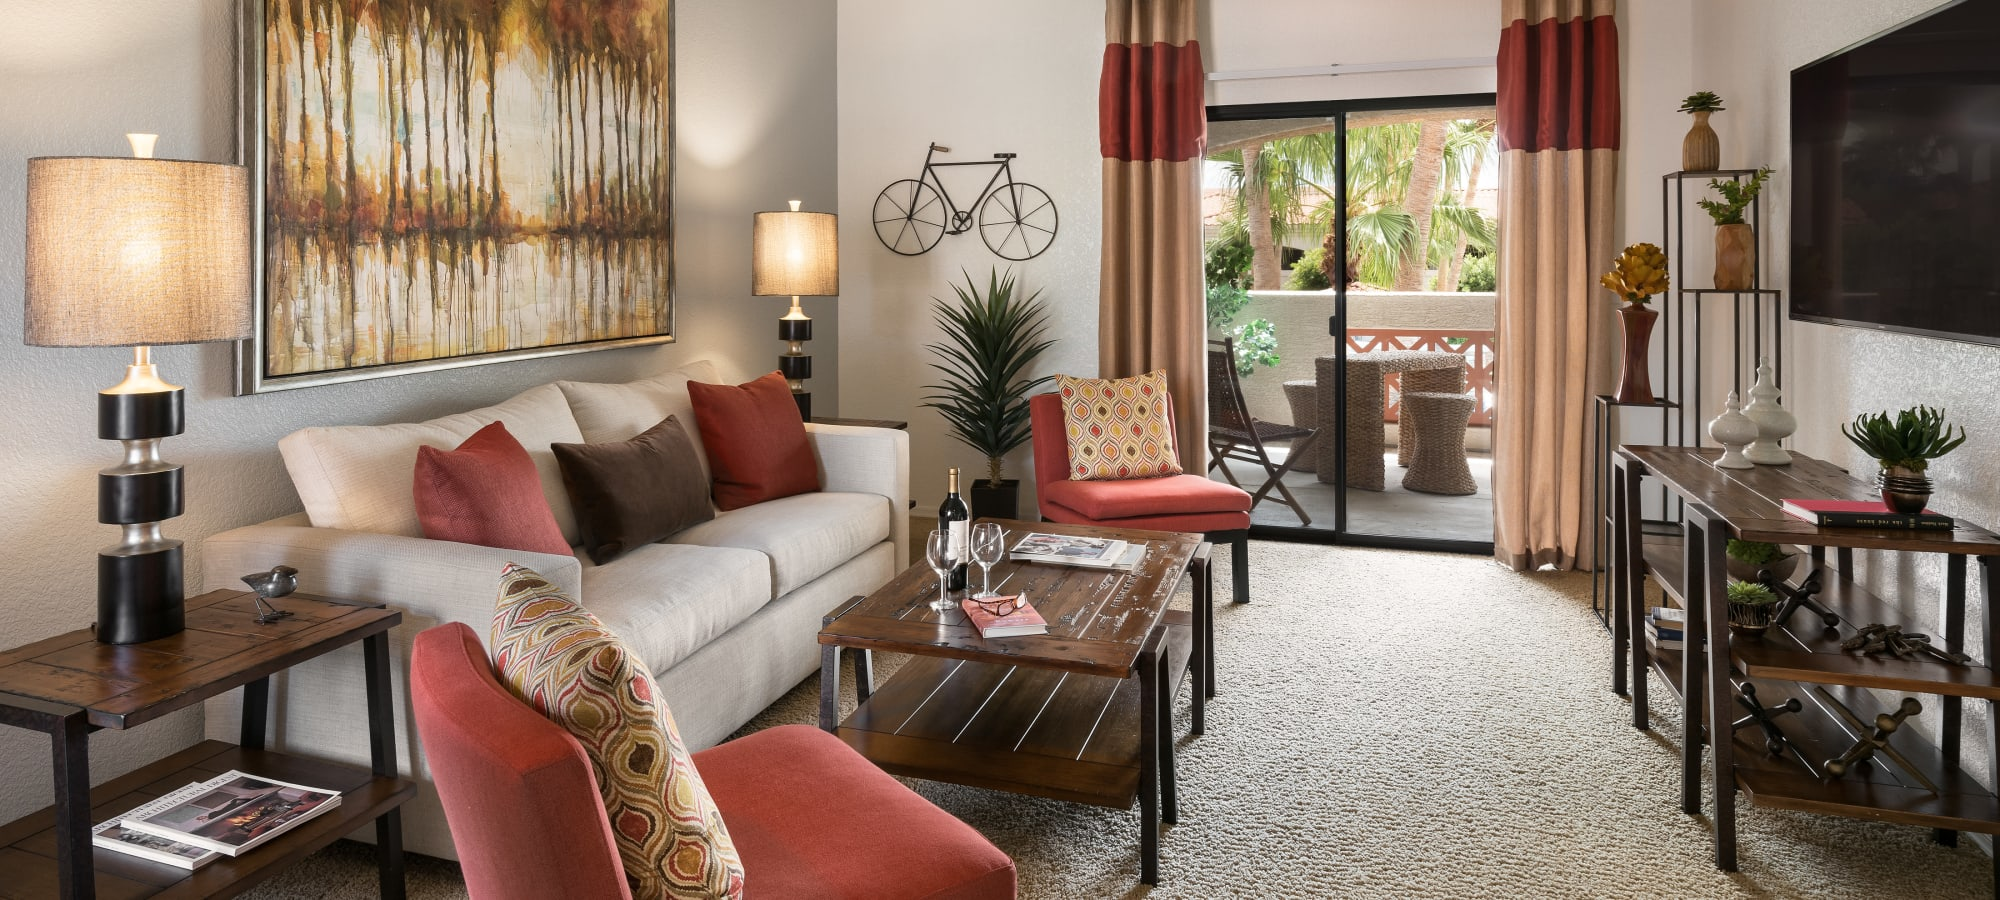 San Prado offers a luxury living room in Glendale, Arizona